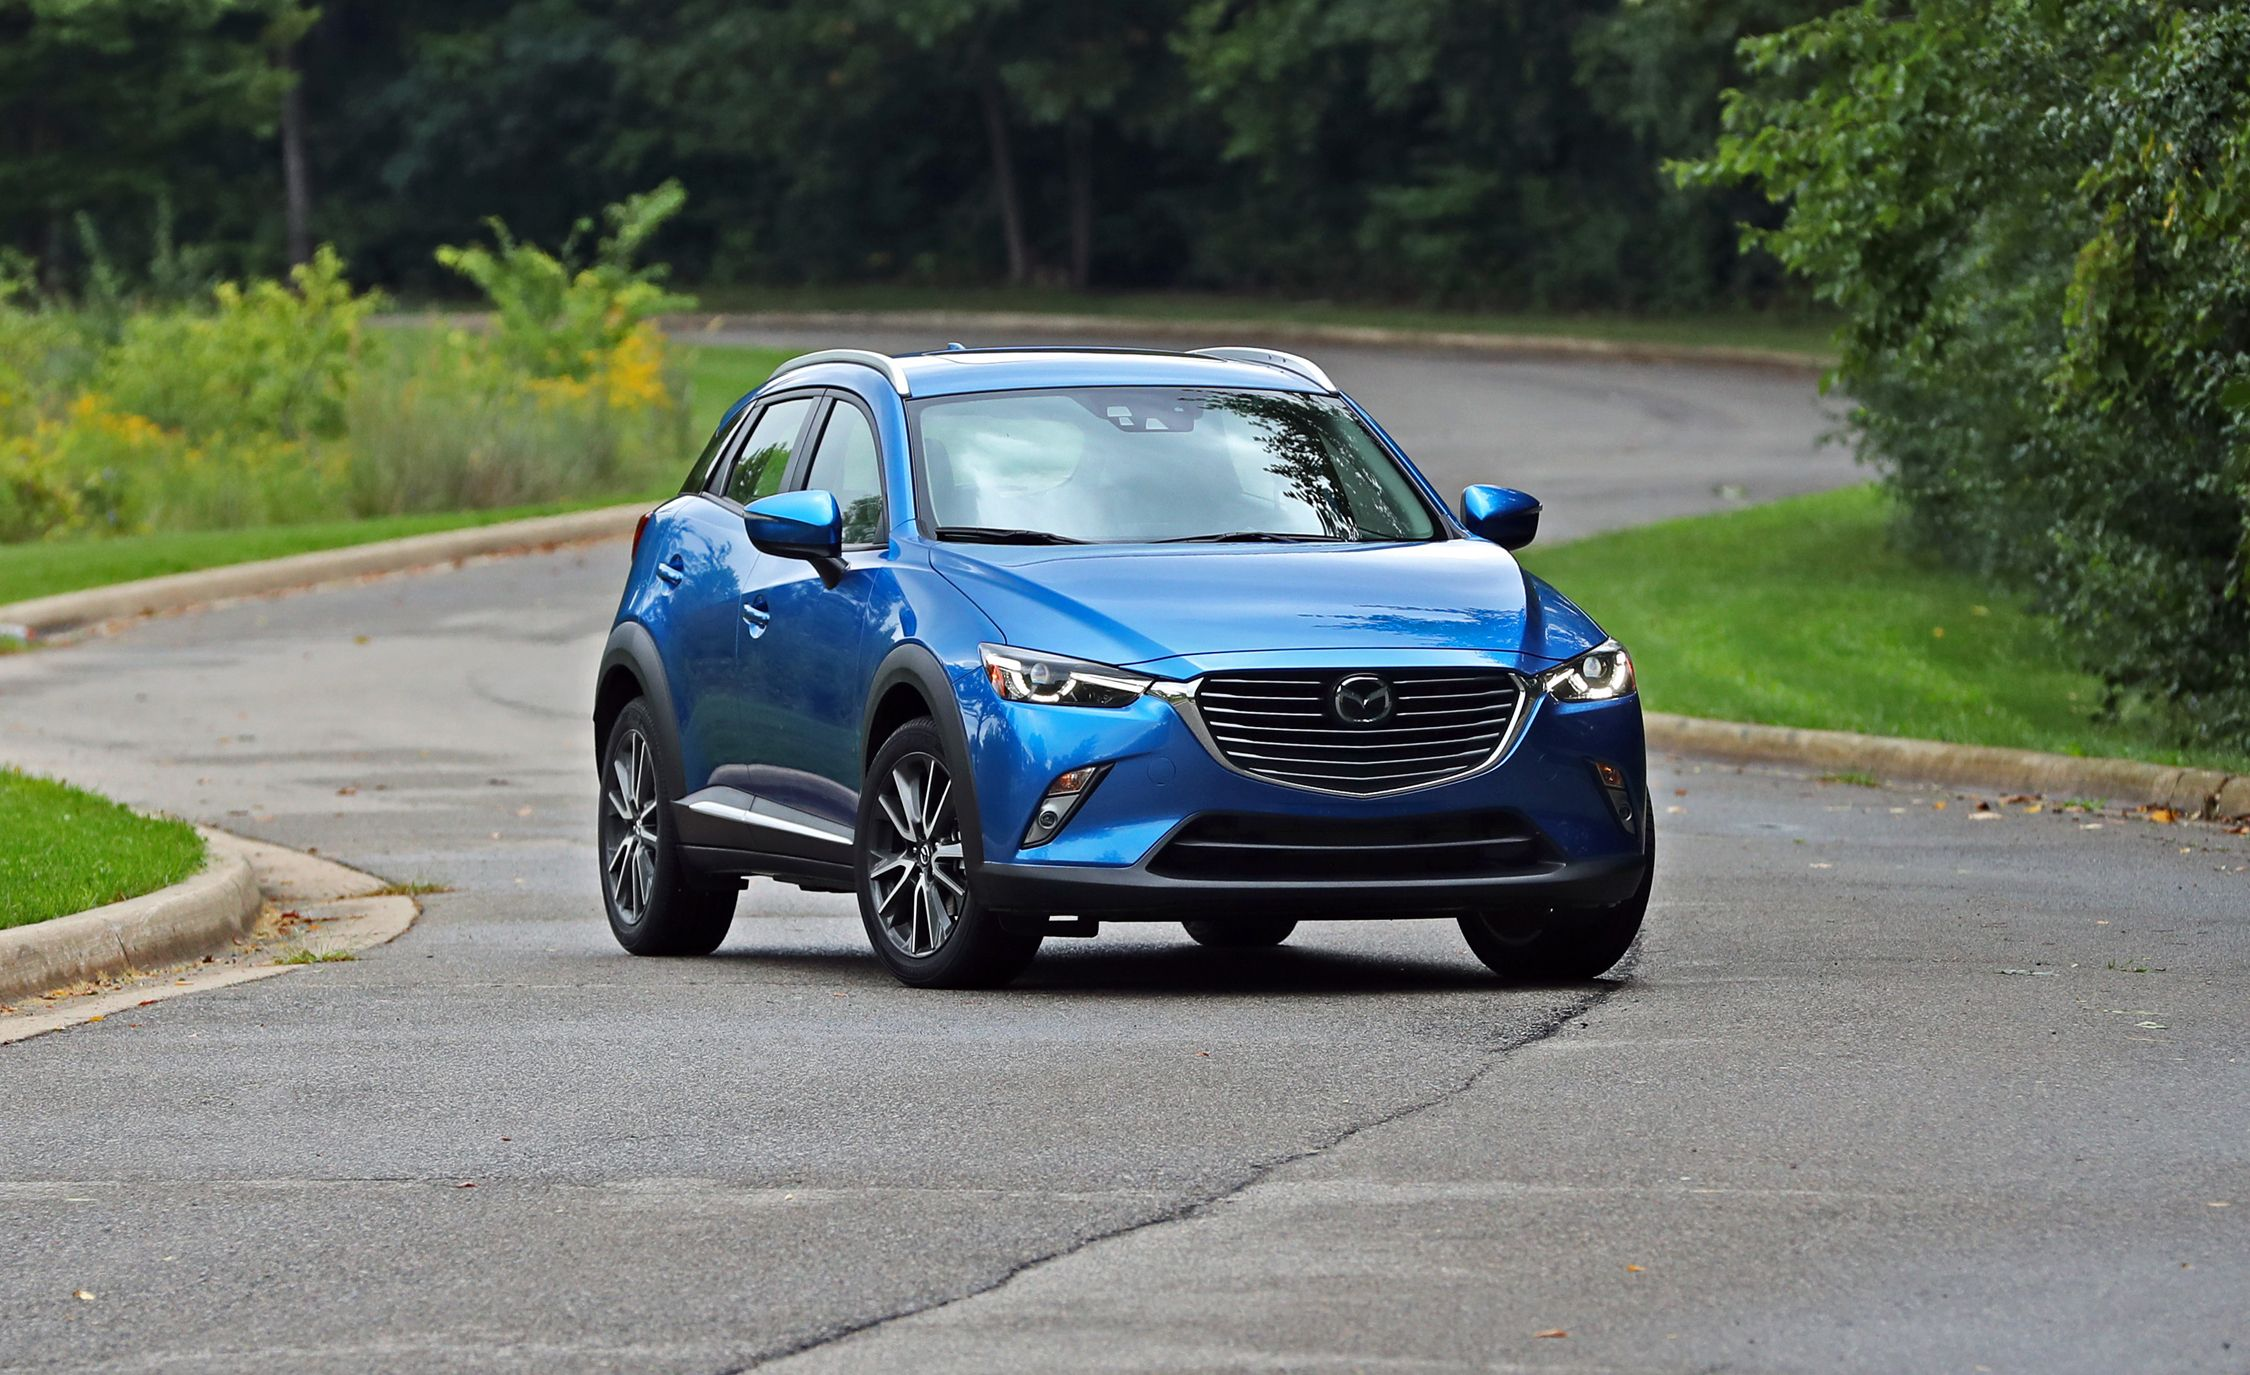 Mazda Cx 3 Reviews Mazda Cx 3 Price Photos And Specs Car And